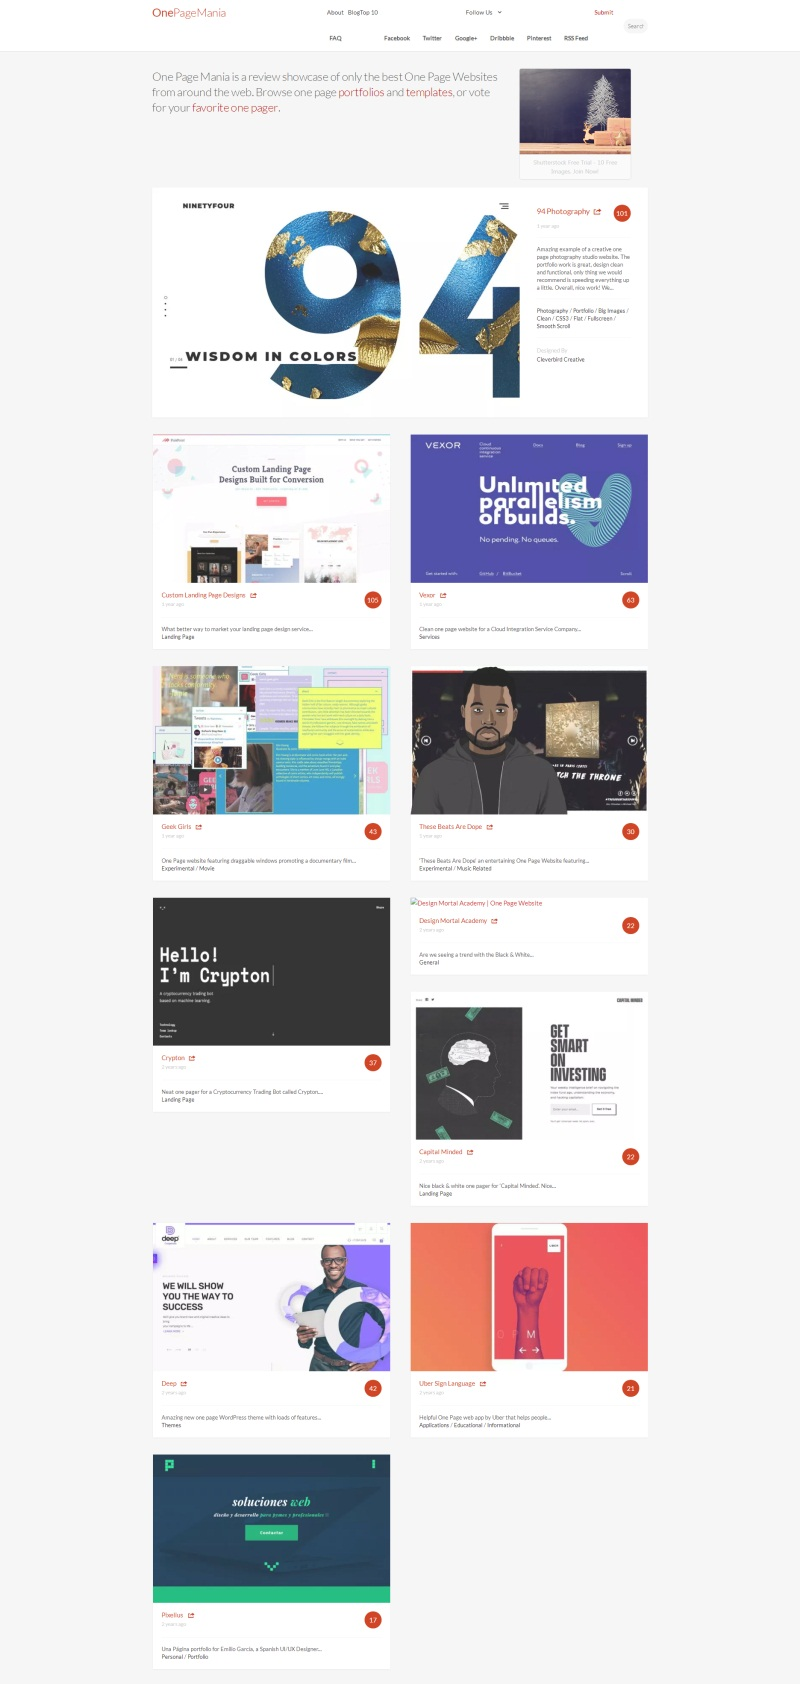 One Page Mania _ A Gallery of One Page Websites_看图王.jpg